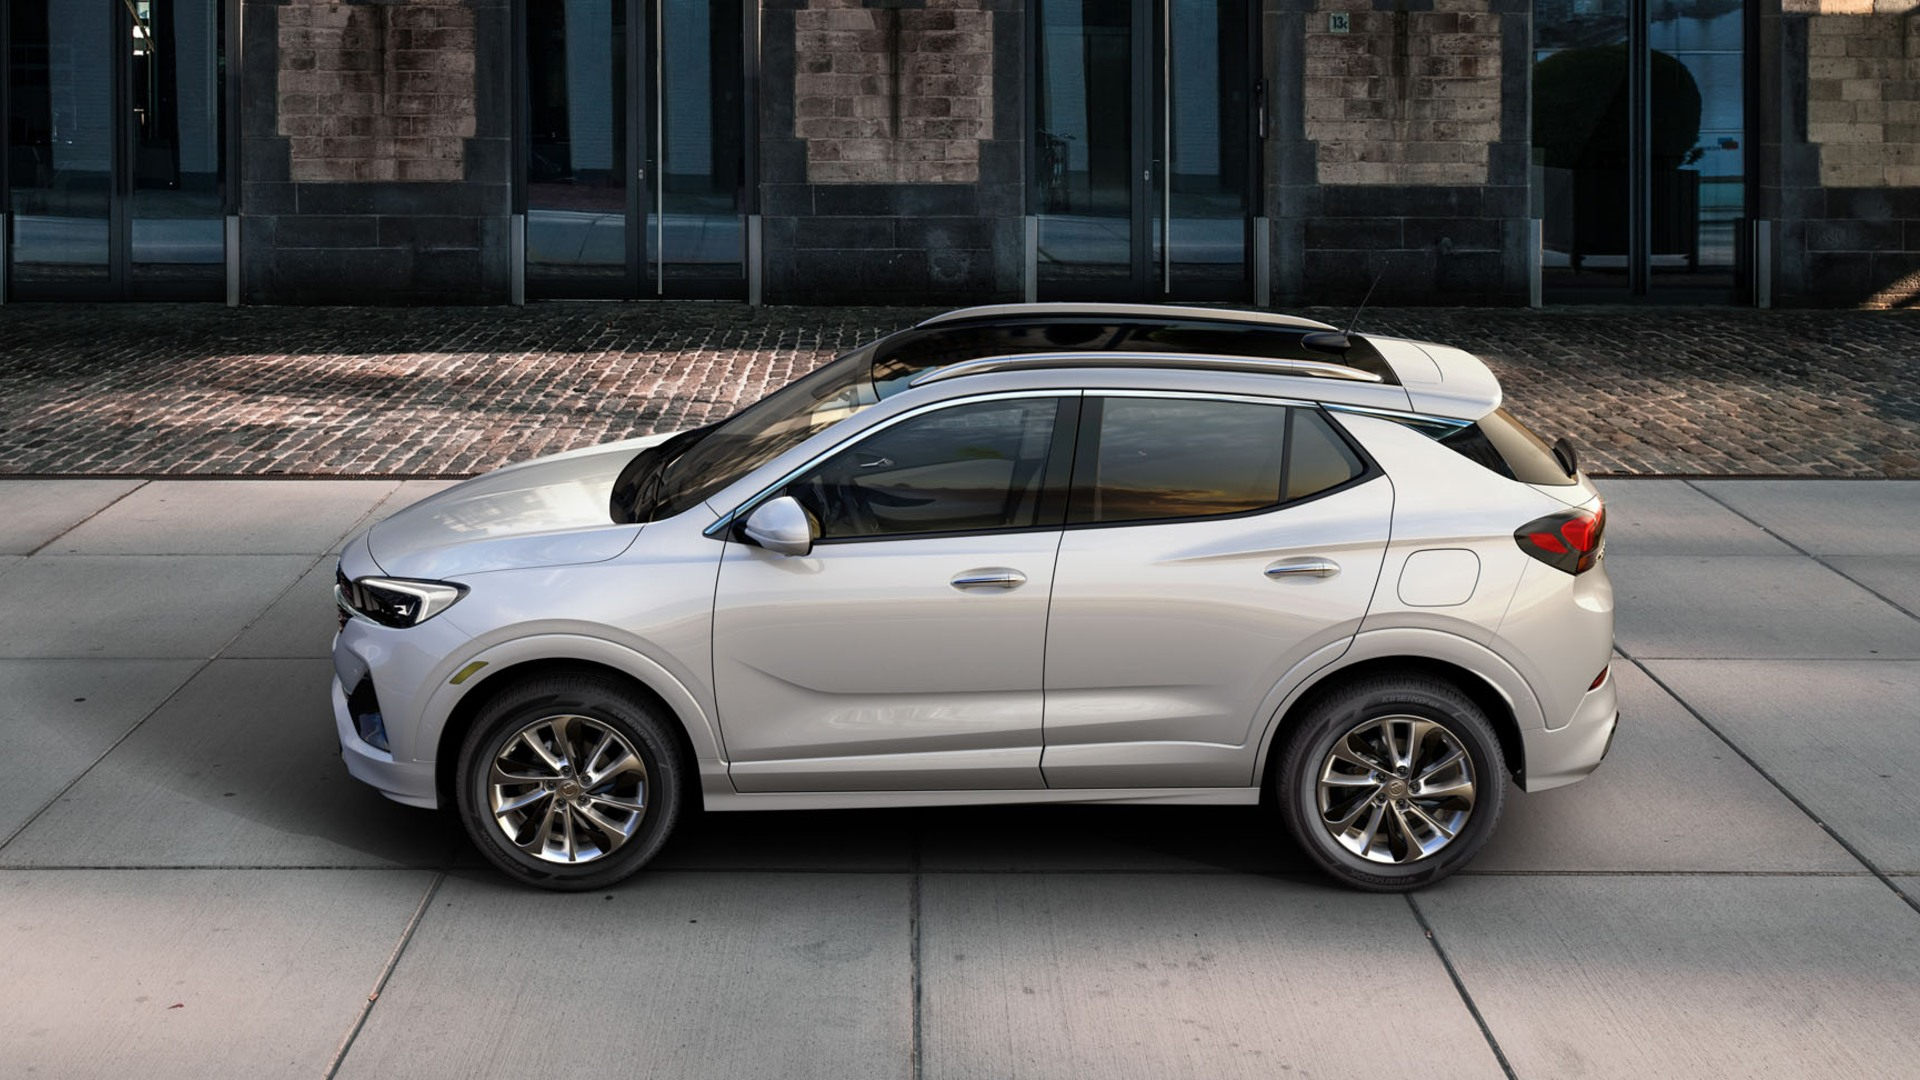 Buick Reveals U.s. Specs For The 2020 Encore Gx 2022 Buick Encore Gx Safety Rating, Specifications, Tire Size